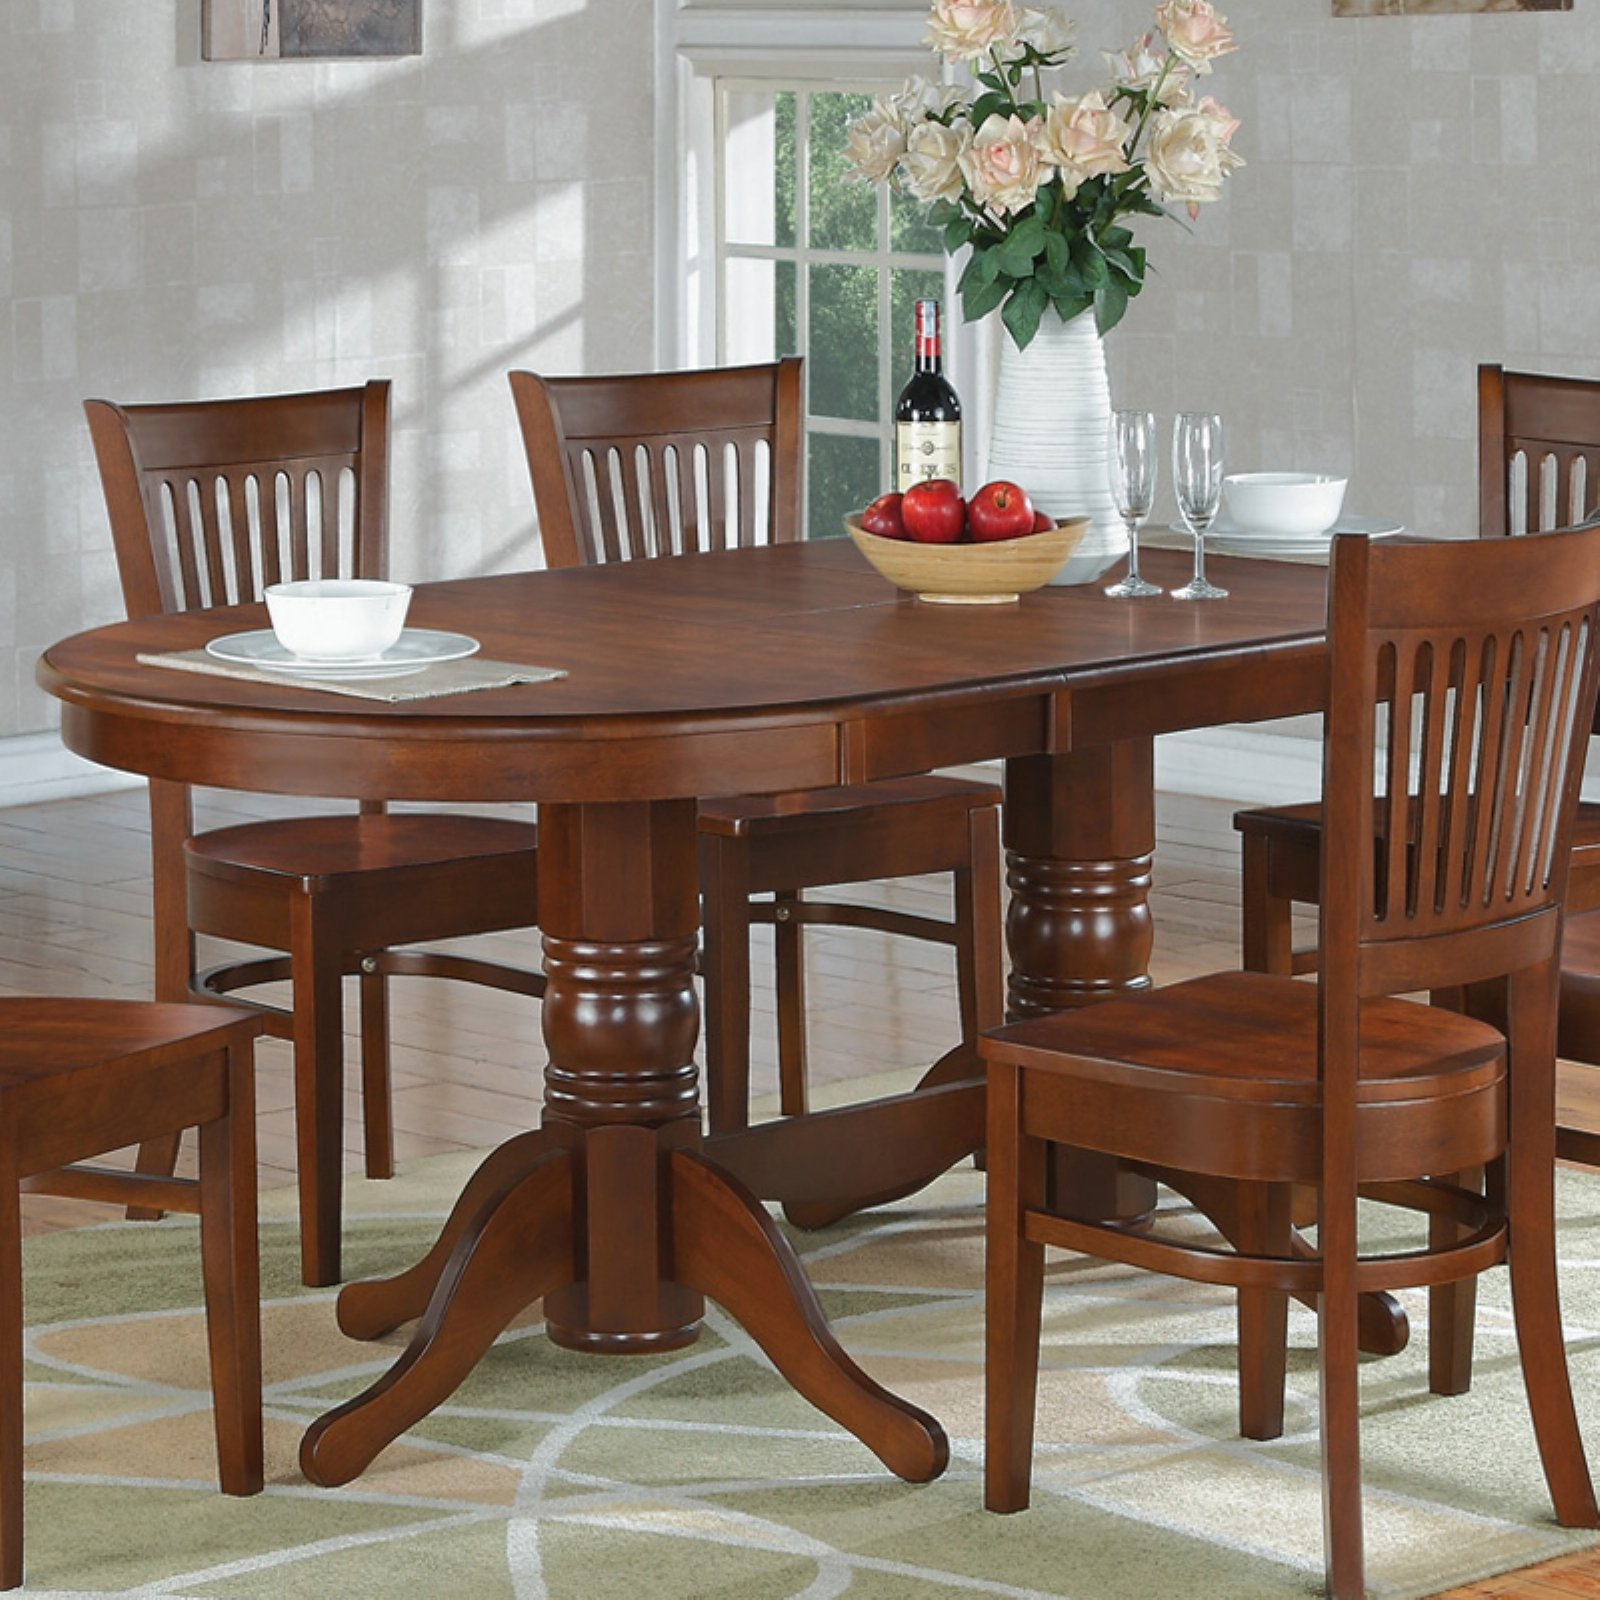 East West Furniture 59-76 Inch Vancouver Double Pedestal Oval Dining Table with Butterfly Leaf